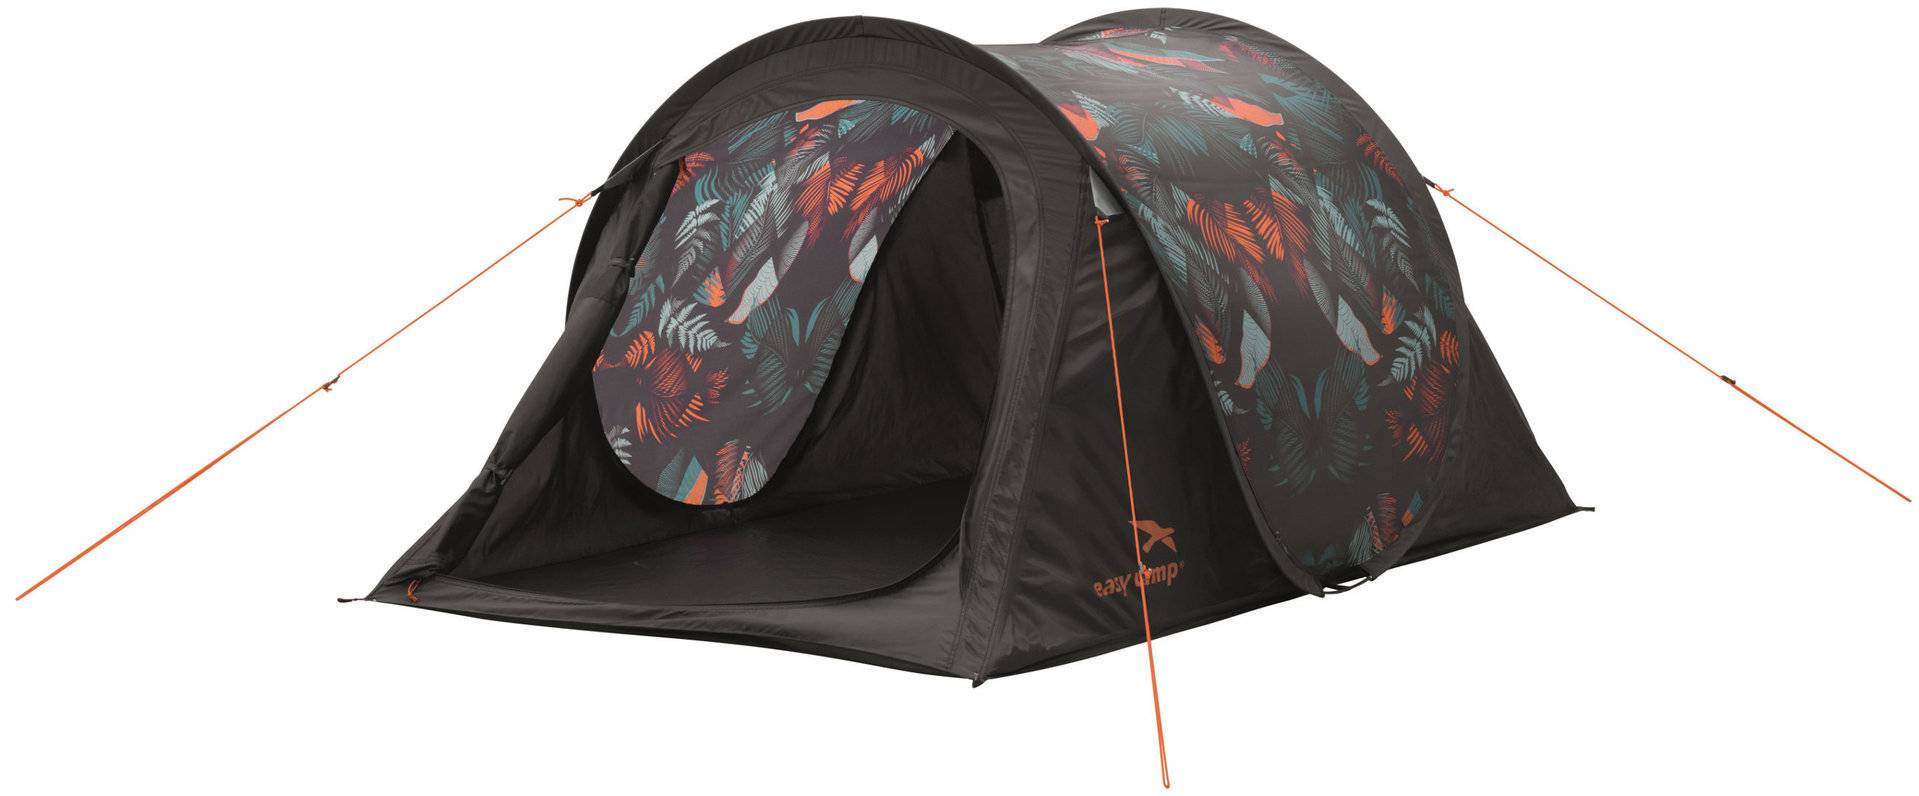 Easy Camp Nightden tenda Nero unica taglia